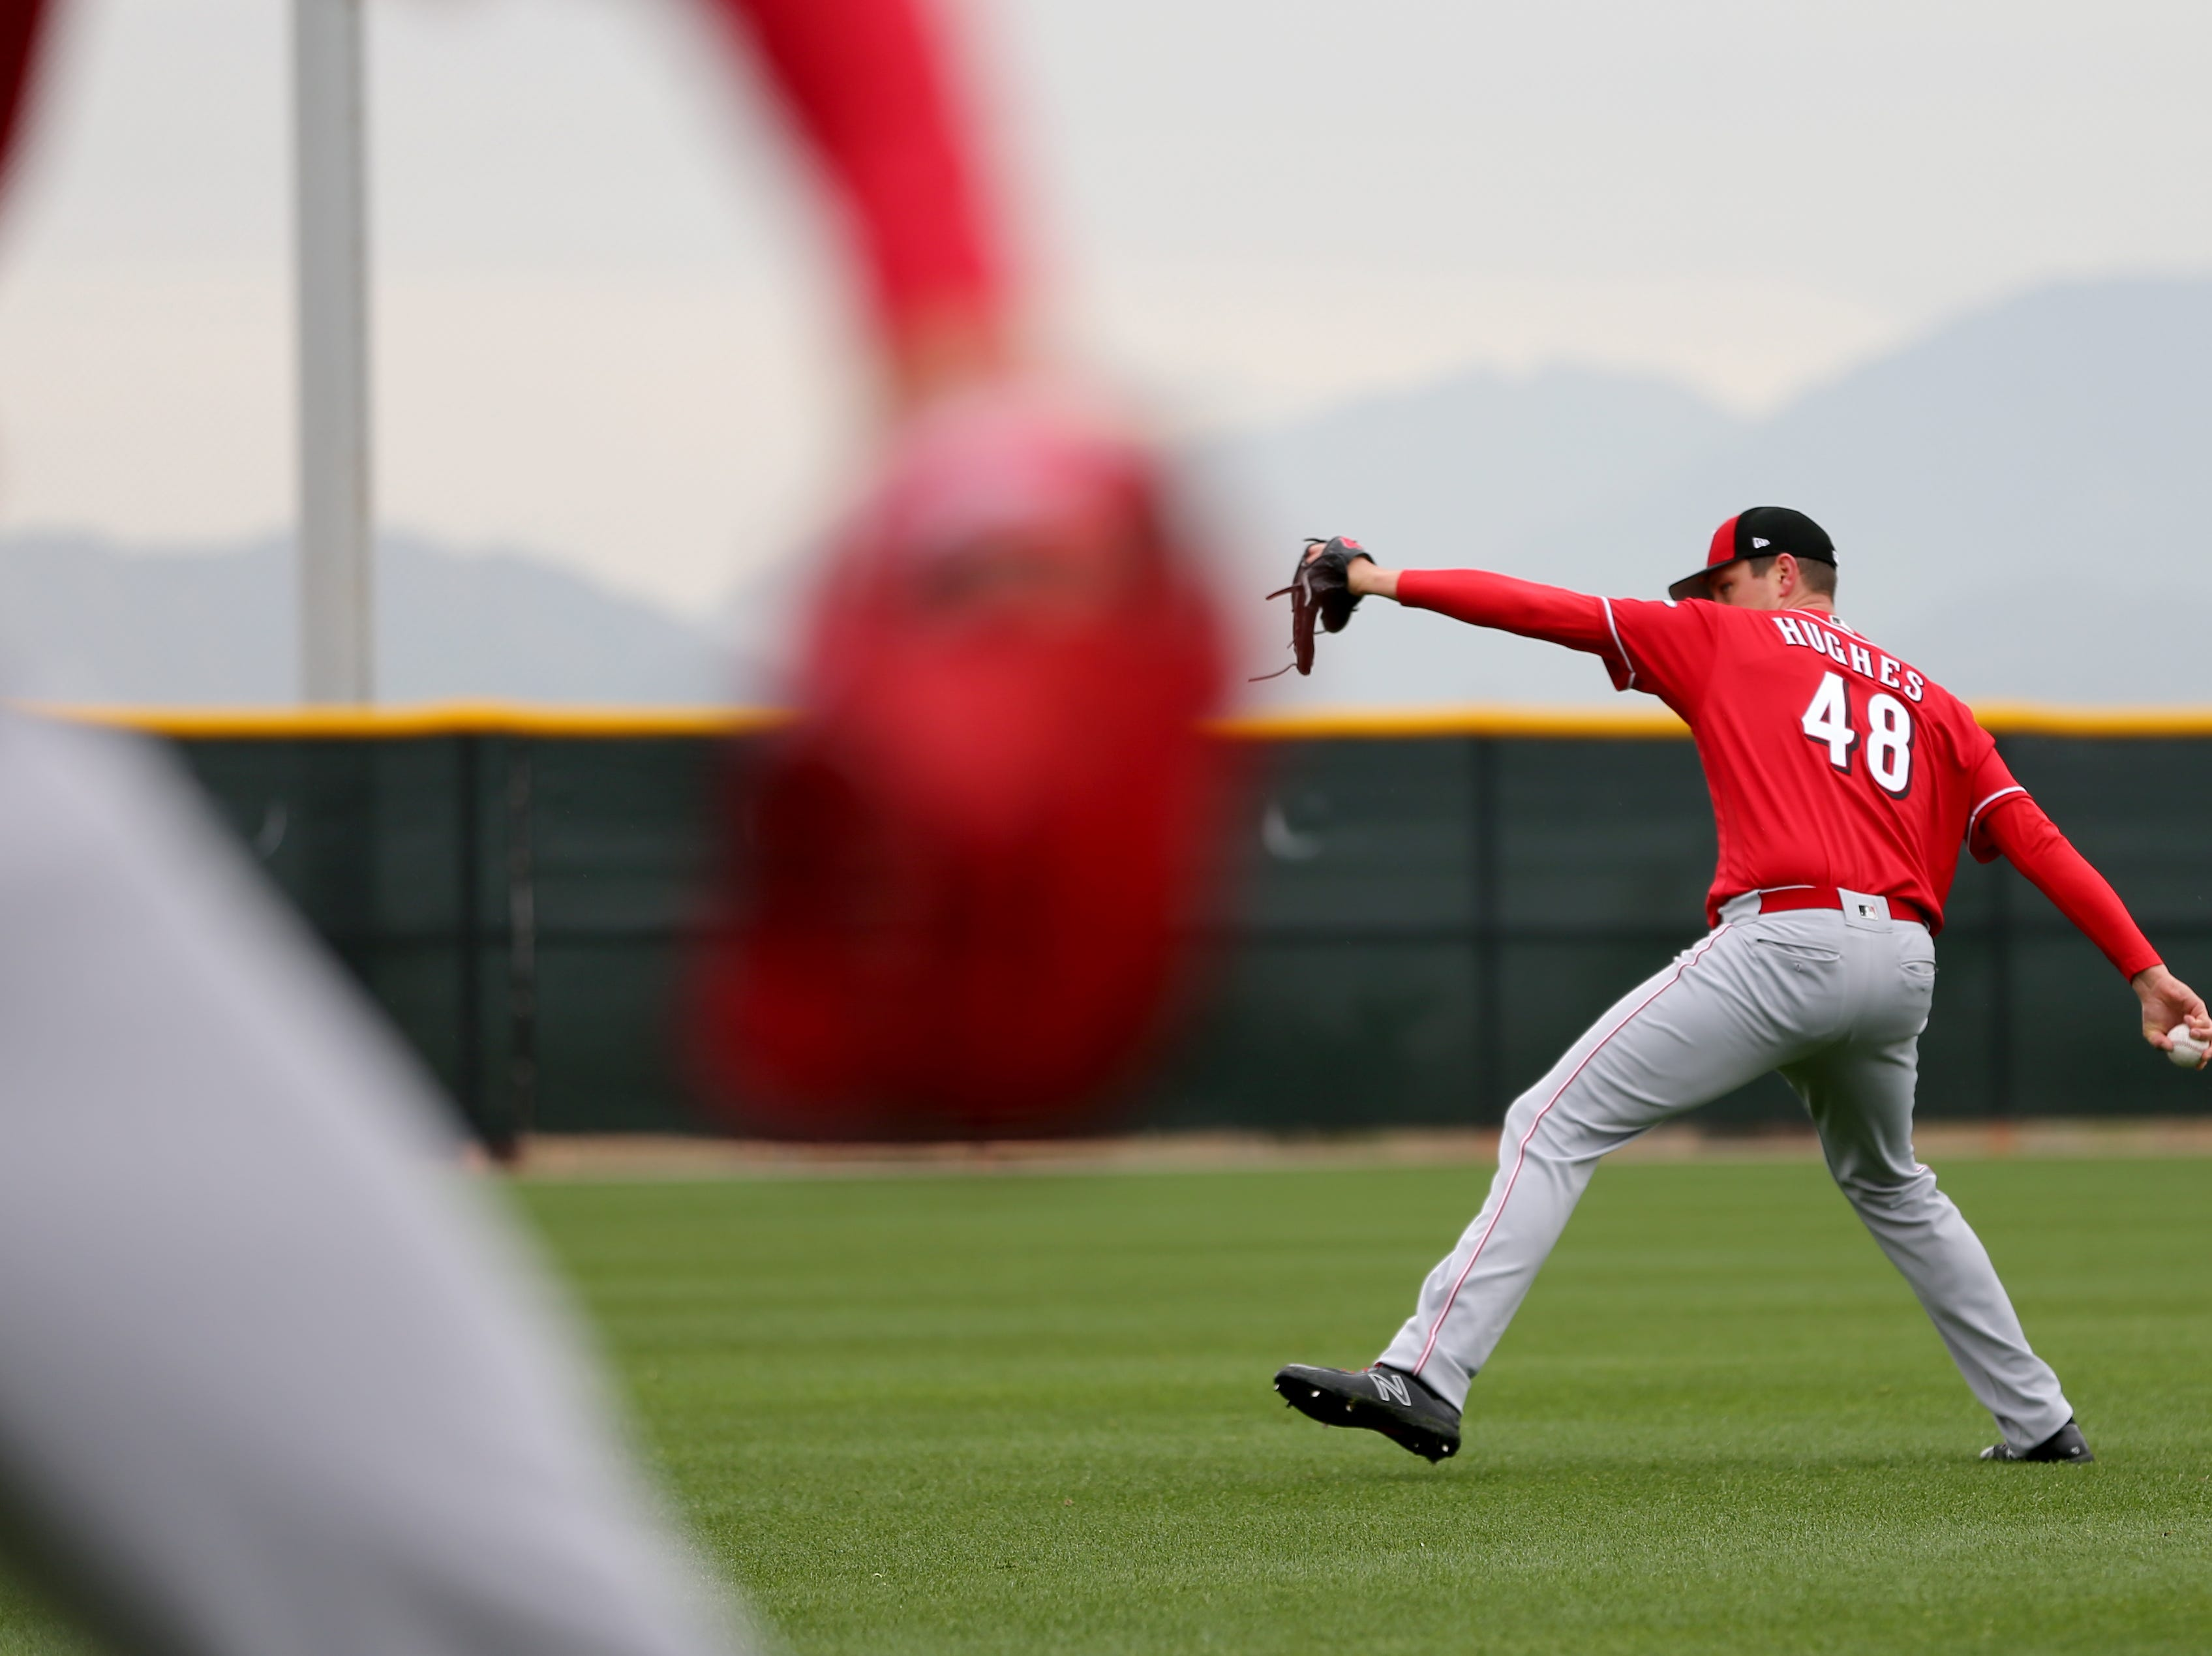 Cincinnati Reds relief pitcher Jared Hughes (48) throws during long-toss drills as pitchers and catchers work out, Thursday, Feb. 14, 2019, at the Cincinnati Reds spring training facility in Goodyear, Arizona.